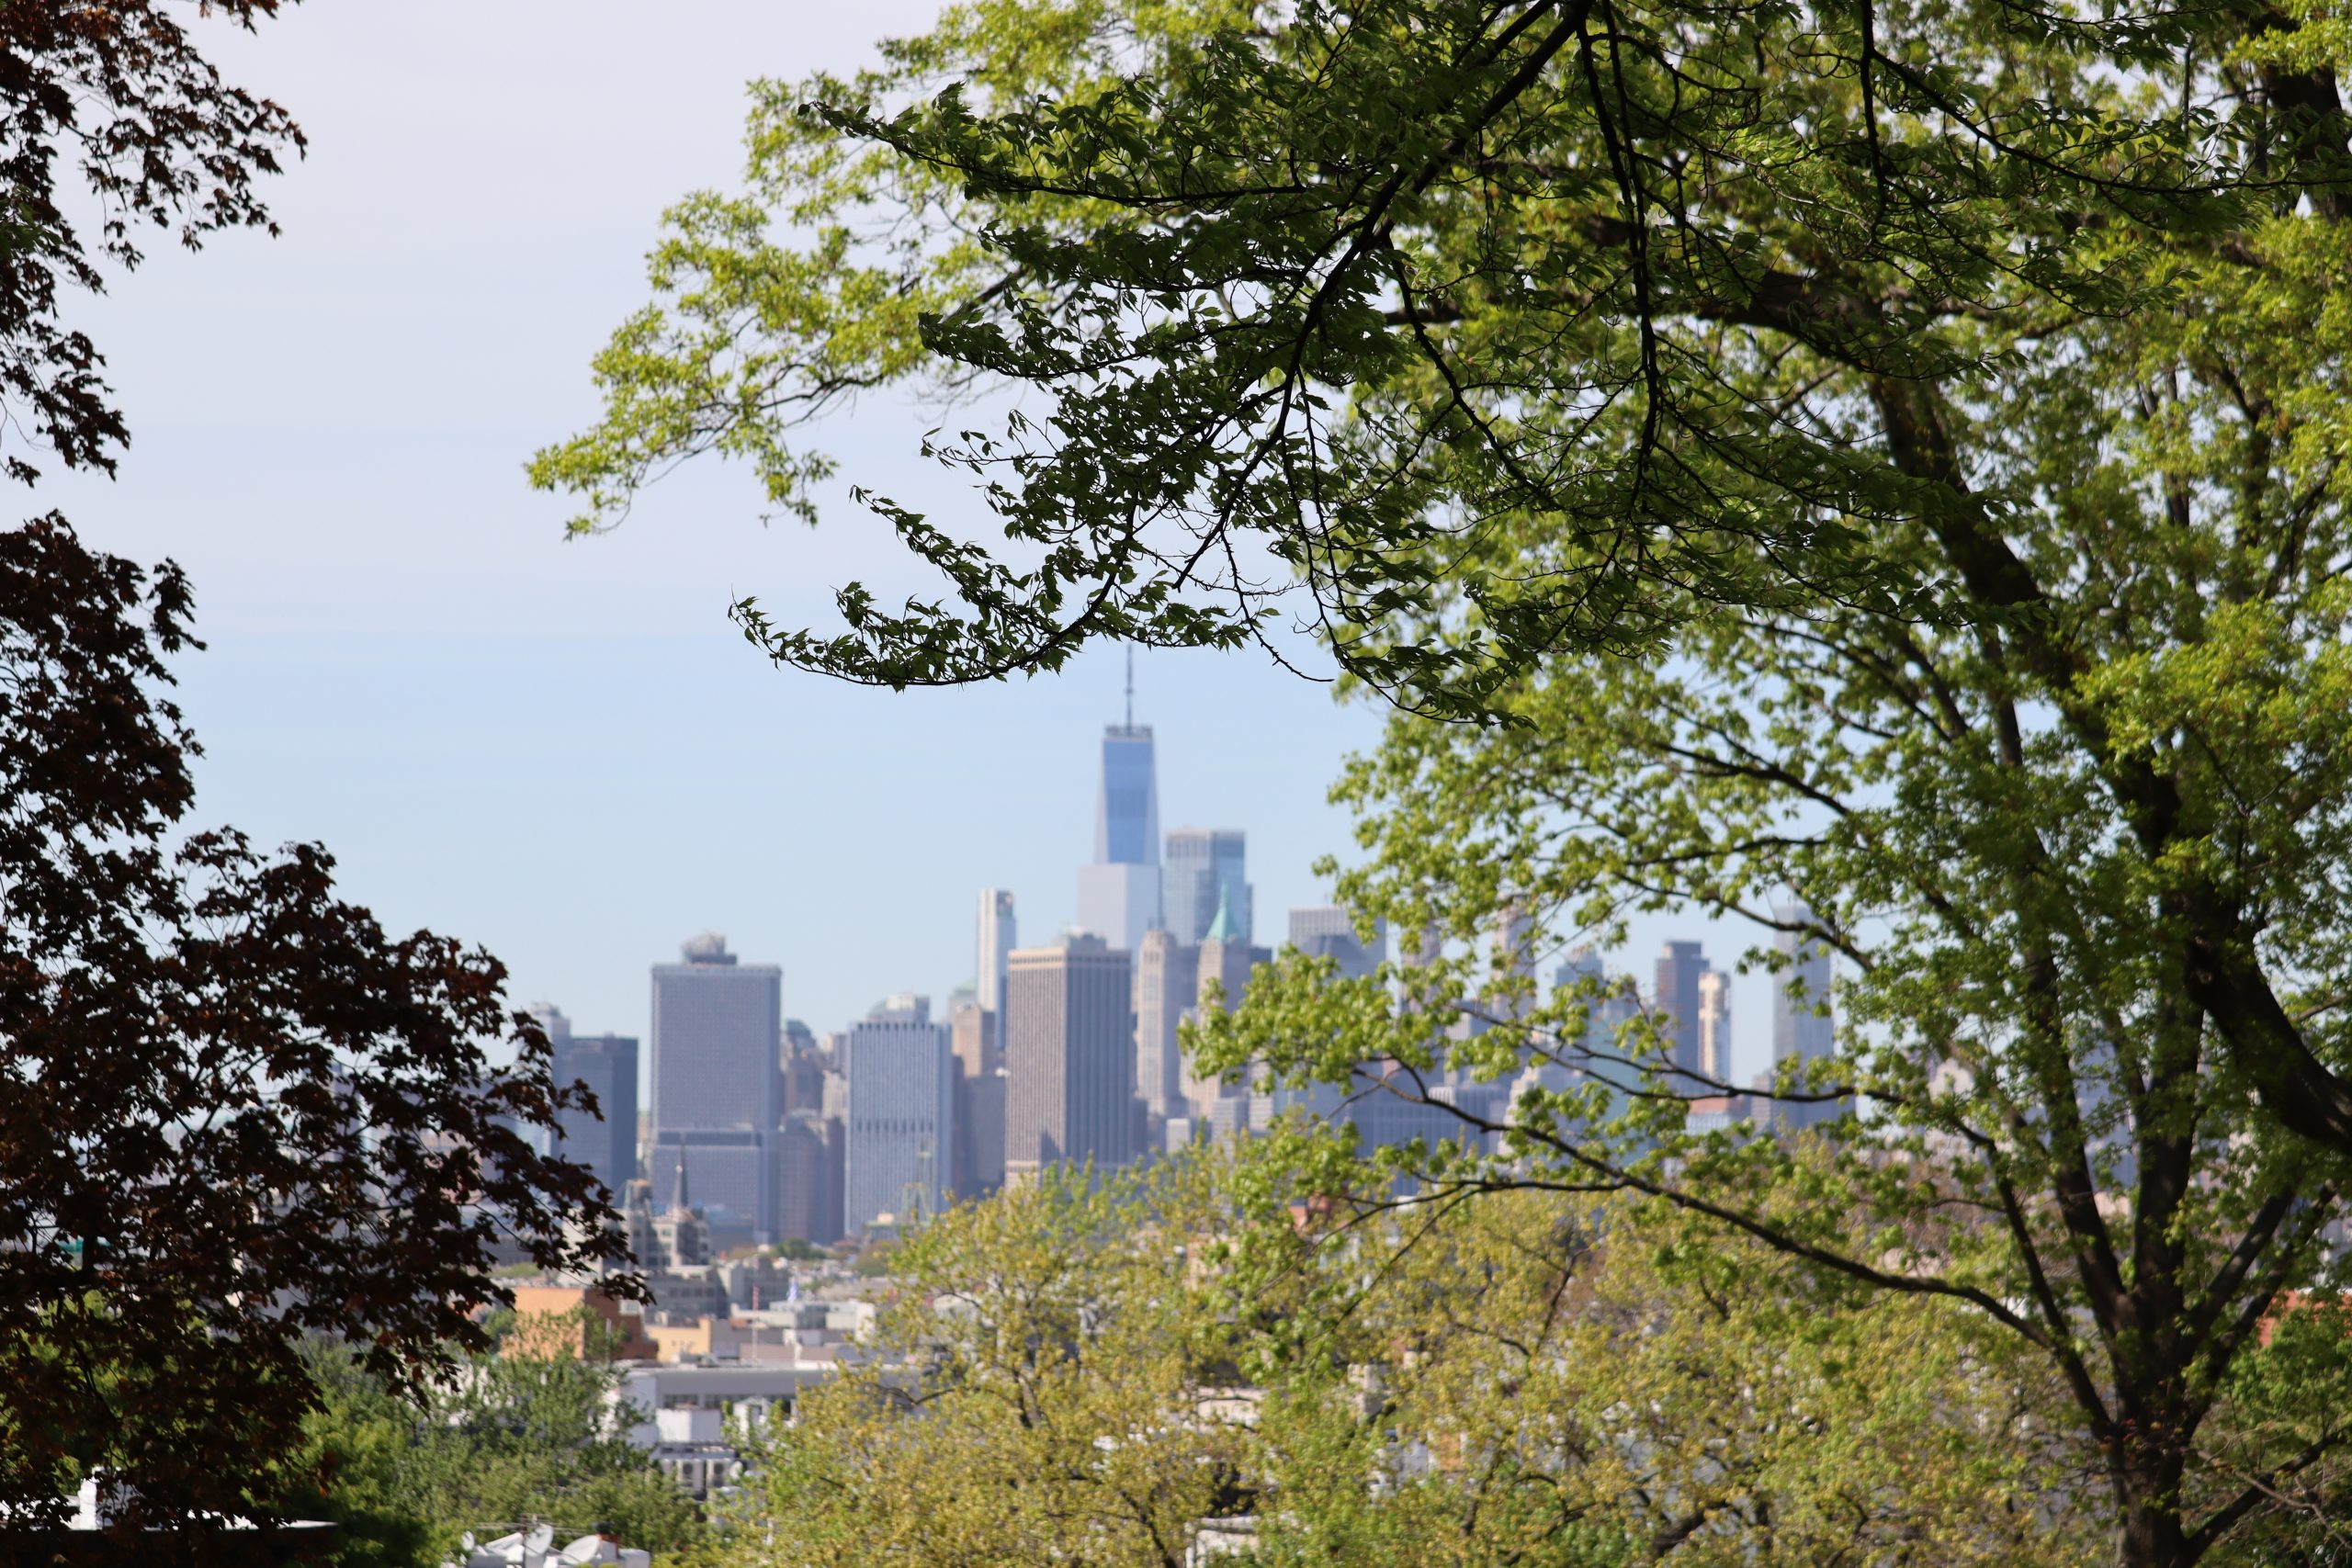 View of Manhattan from Green-Wood Cemetery using a 70MM (thought it was at 55MM) lens length. (no 2x telephoto adapter) You can see how the sides are blurry. I didn't feel the magnification was worth it.